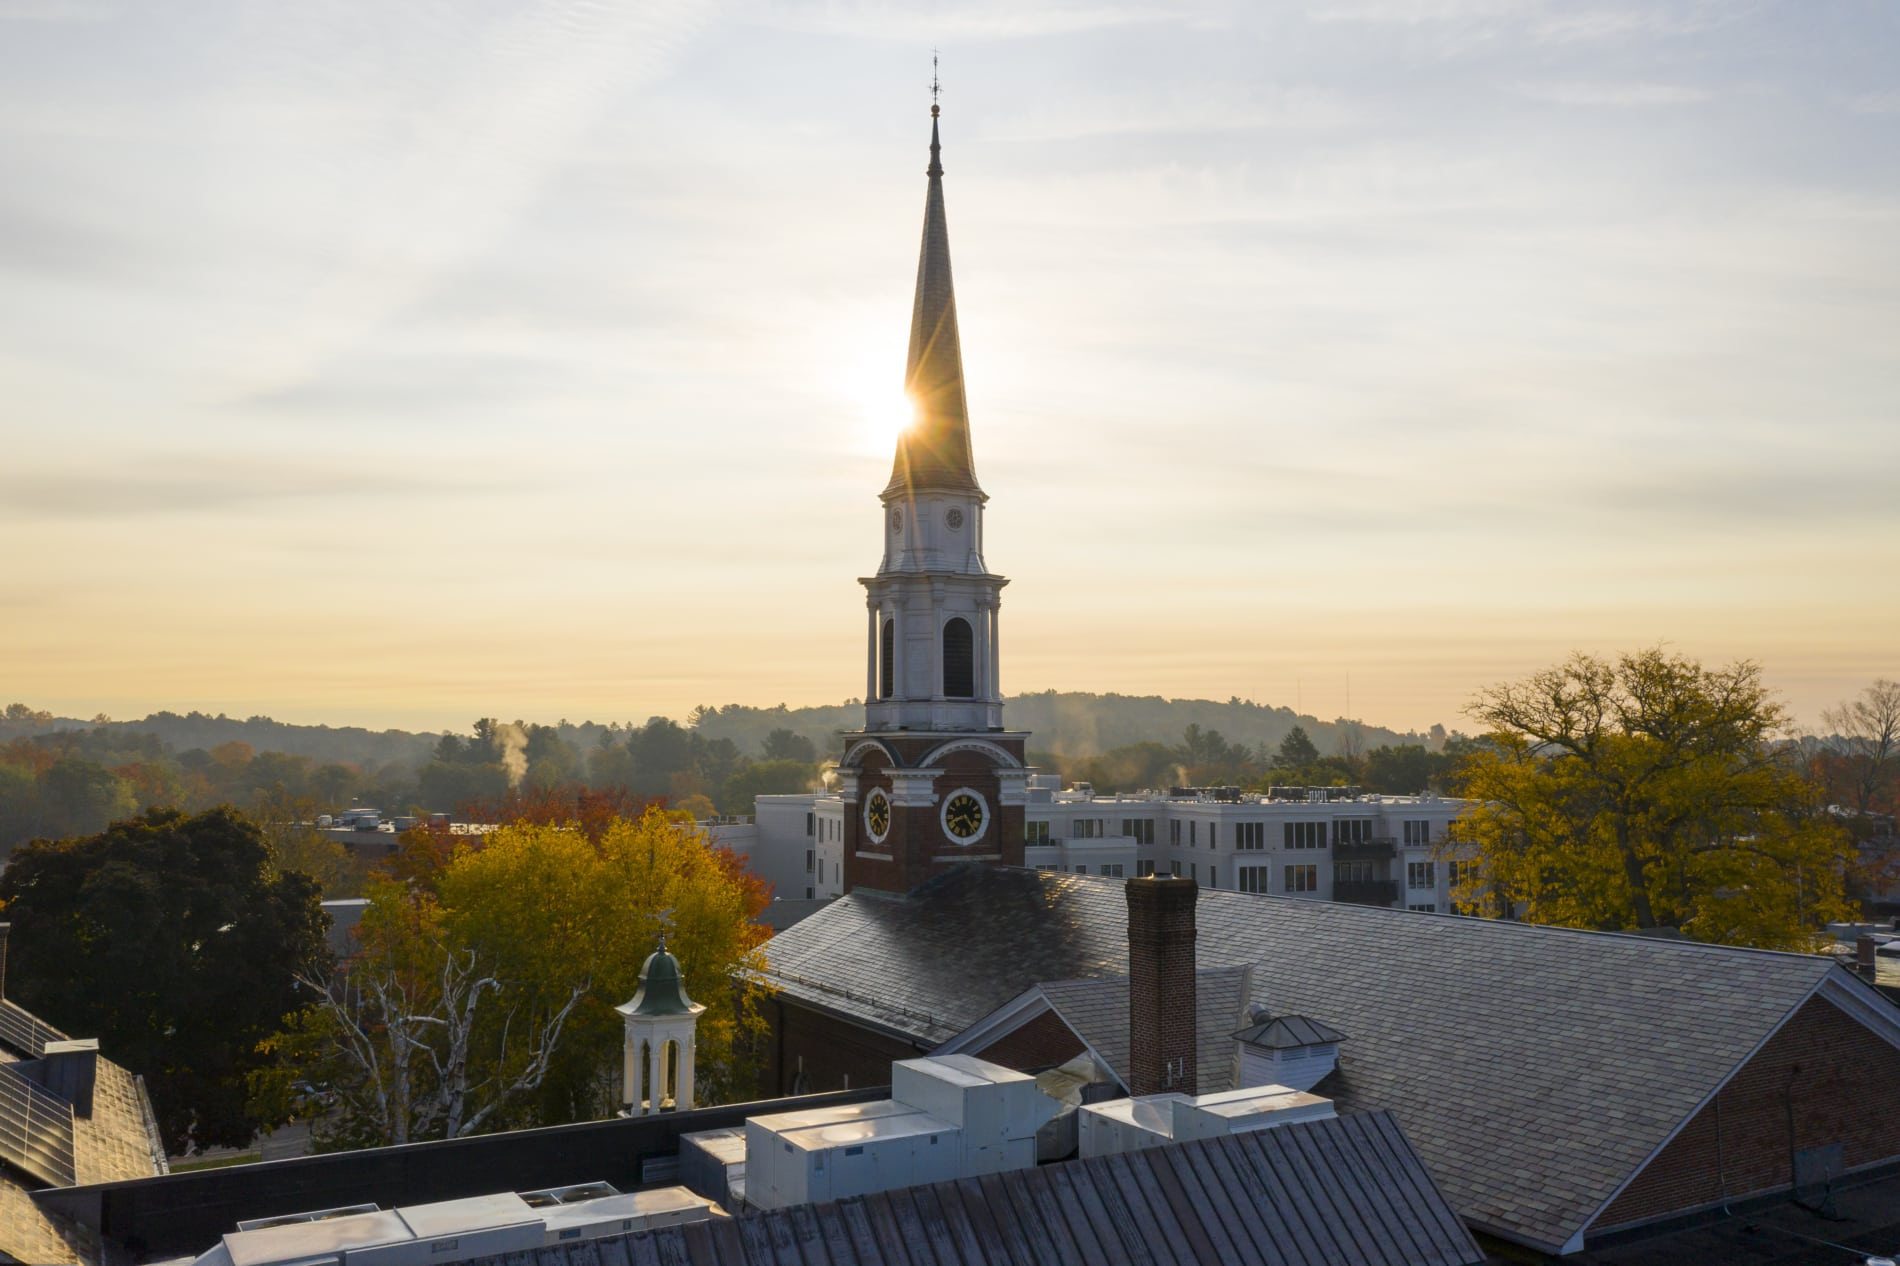 The steeple of the Wellesley Village Church towers over downtown Wellesley as the sun rises.